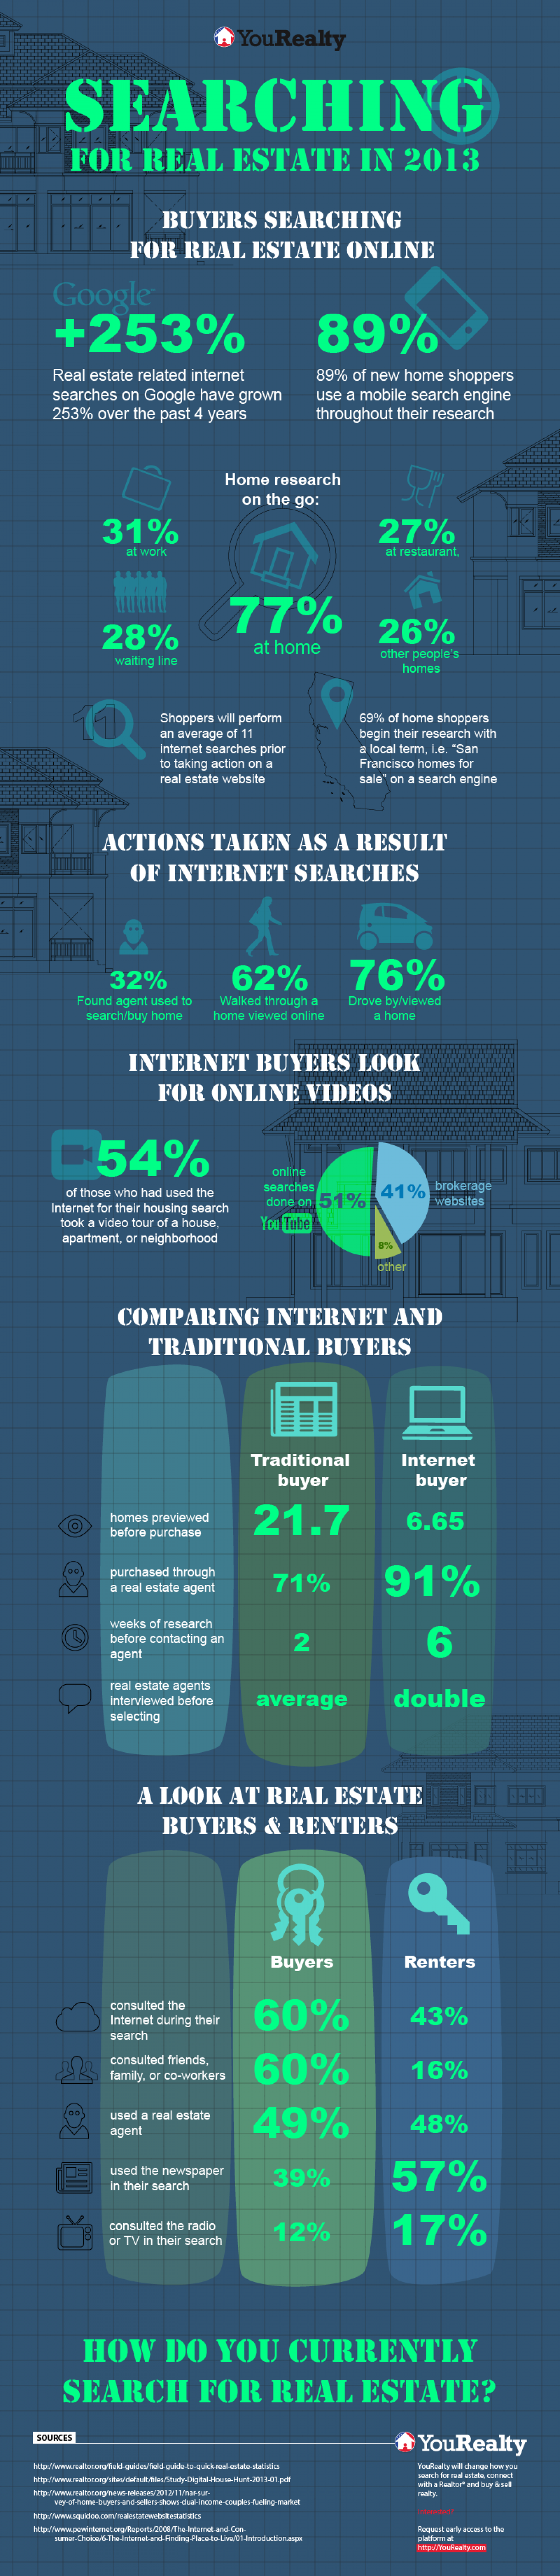 Searching For Real Estate In 2013 Infographic